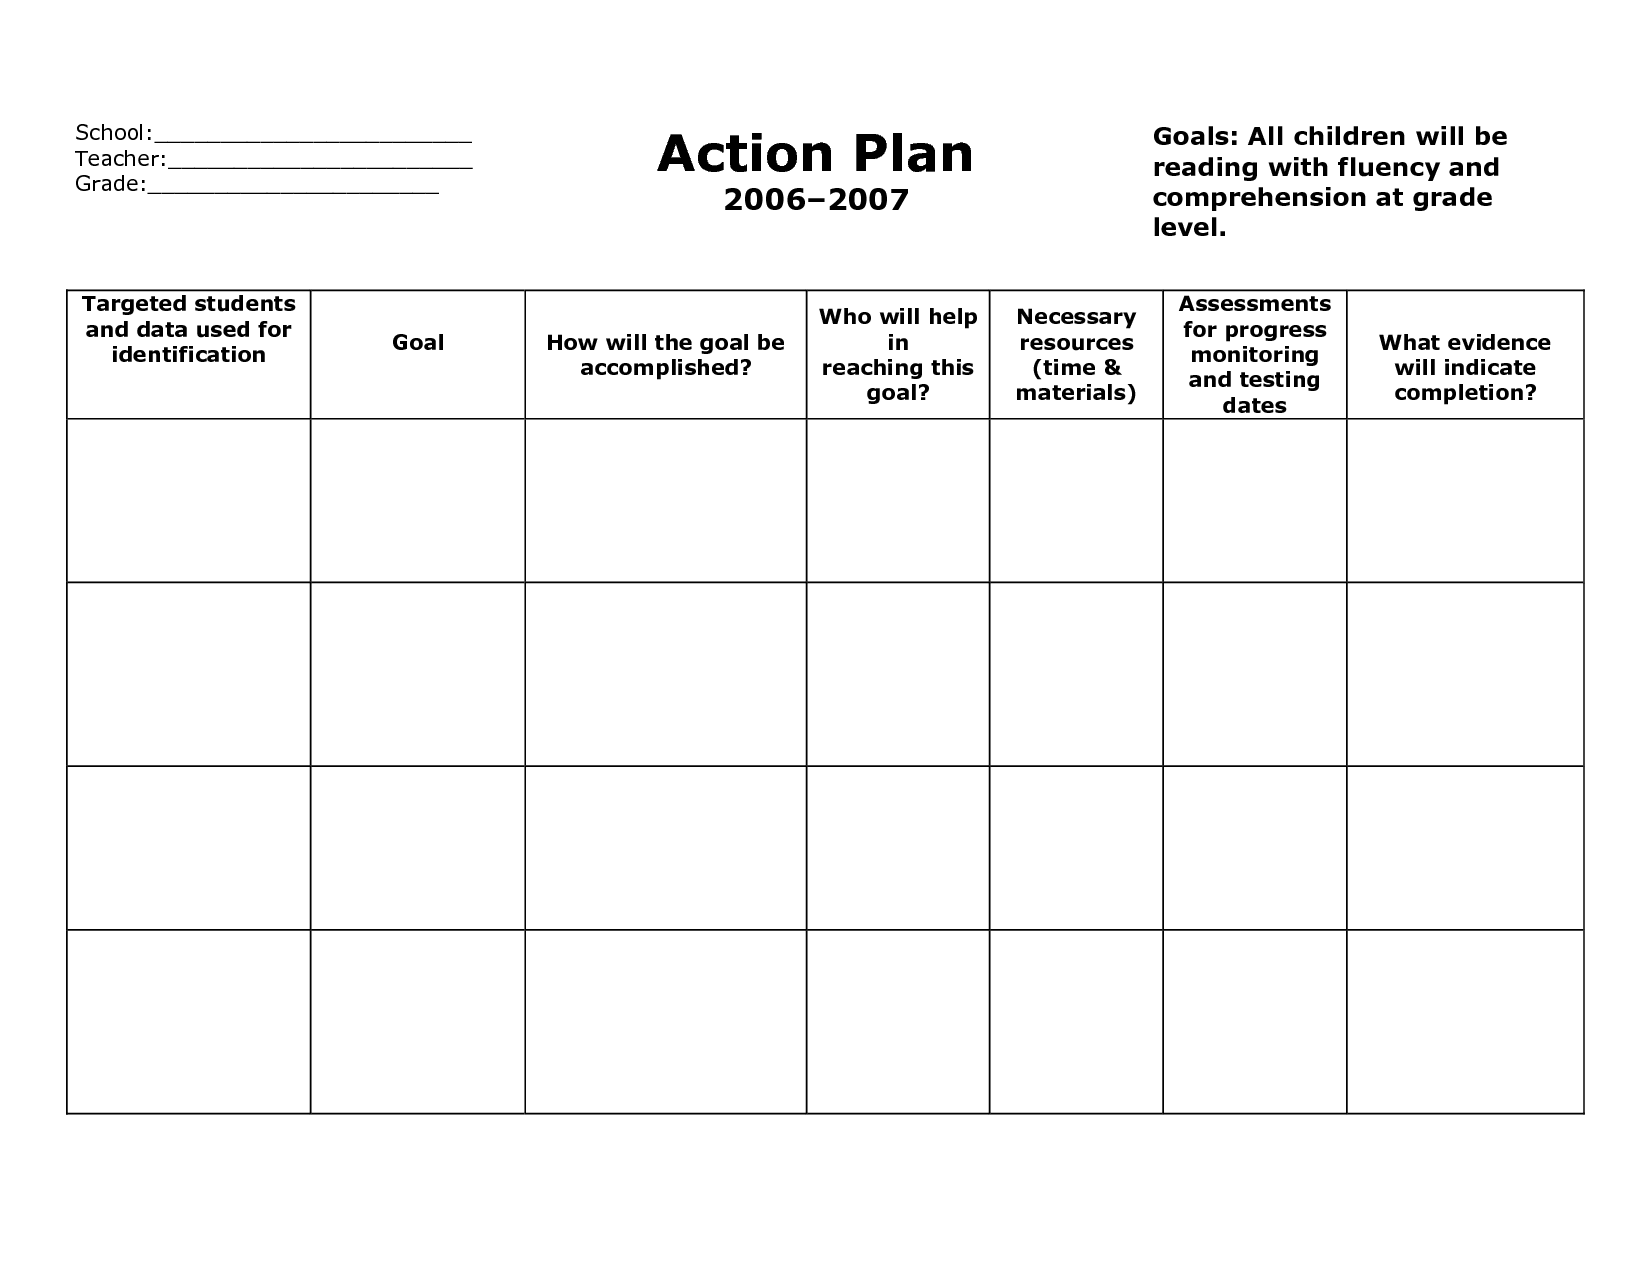 image regarding Weekly Planning Templates titled weekly system e book templates for lecturers Higher education Phase System